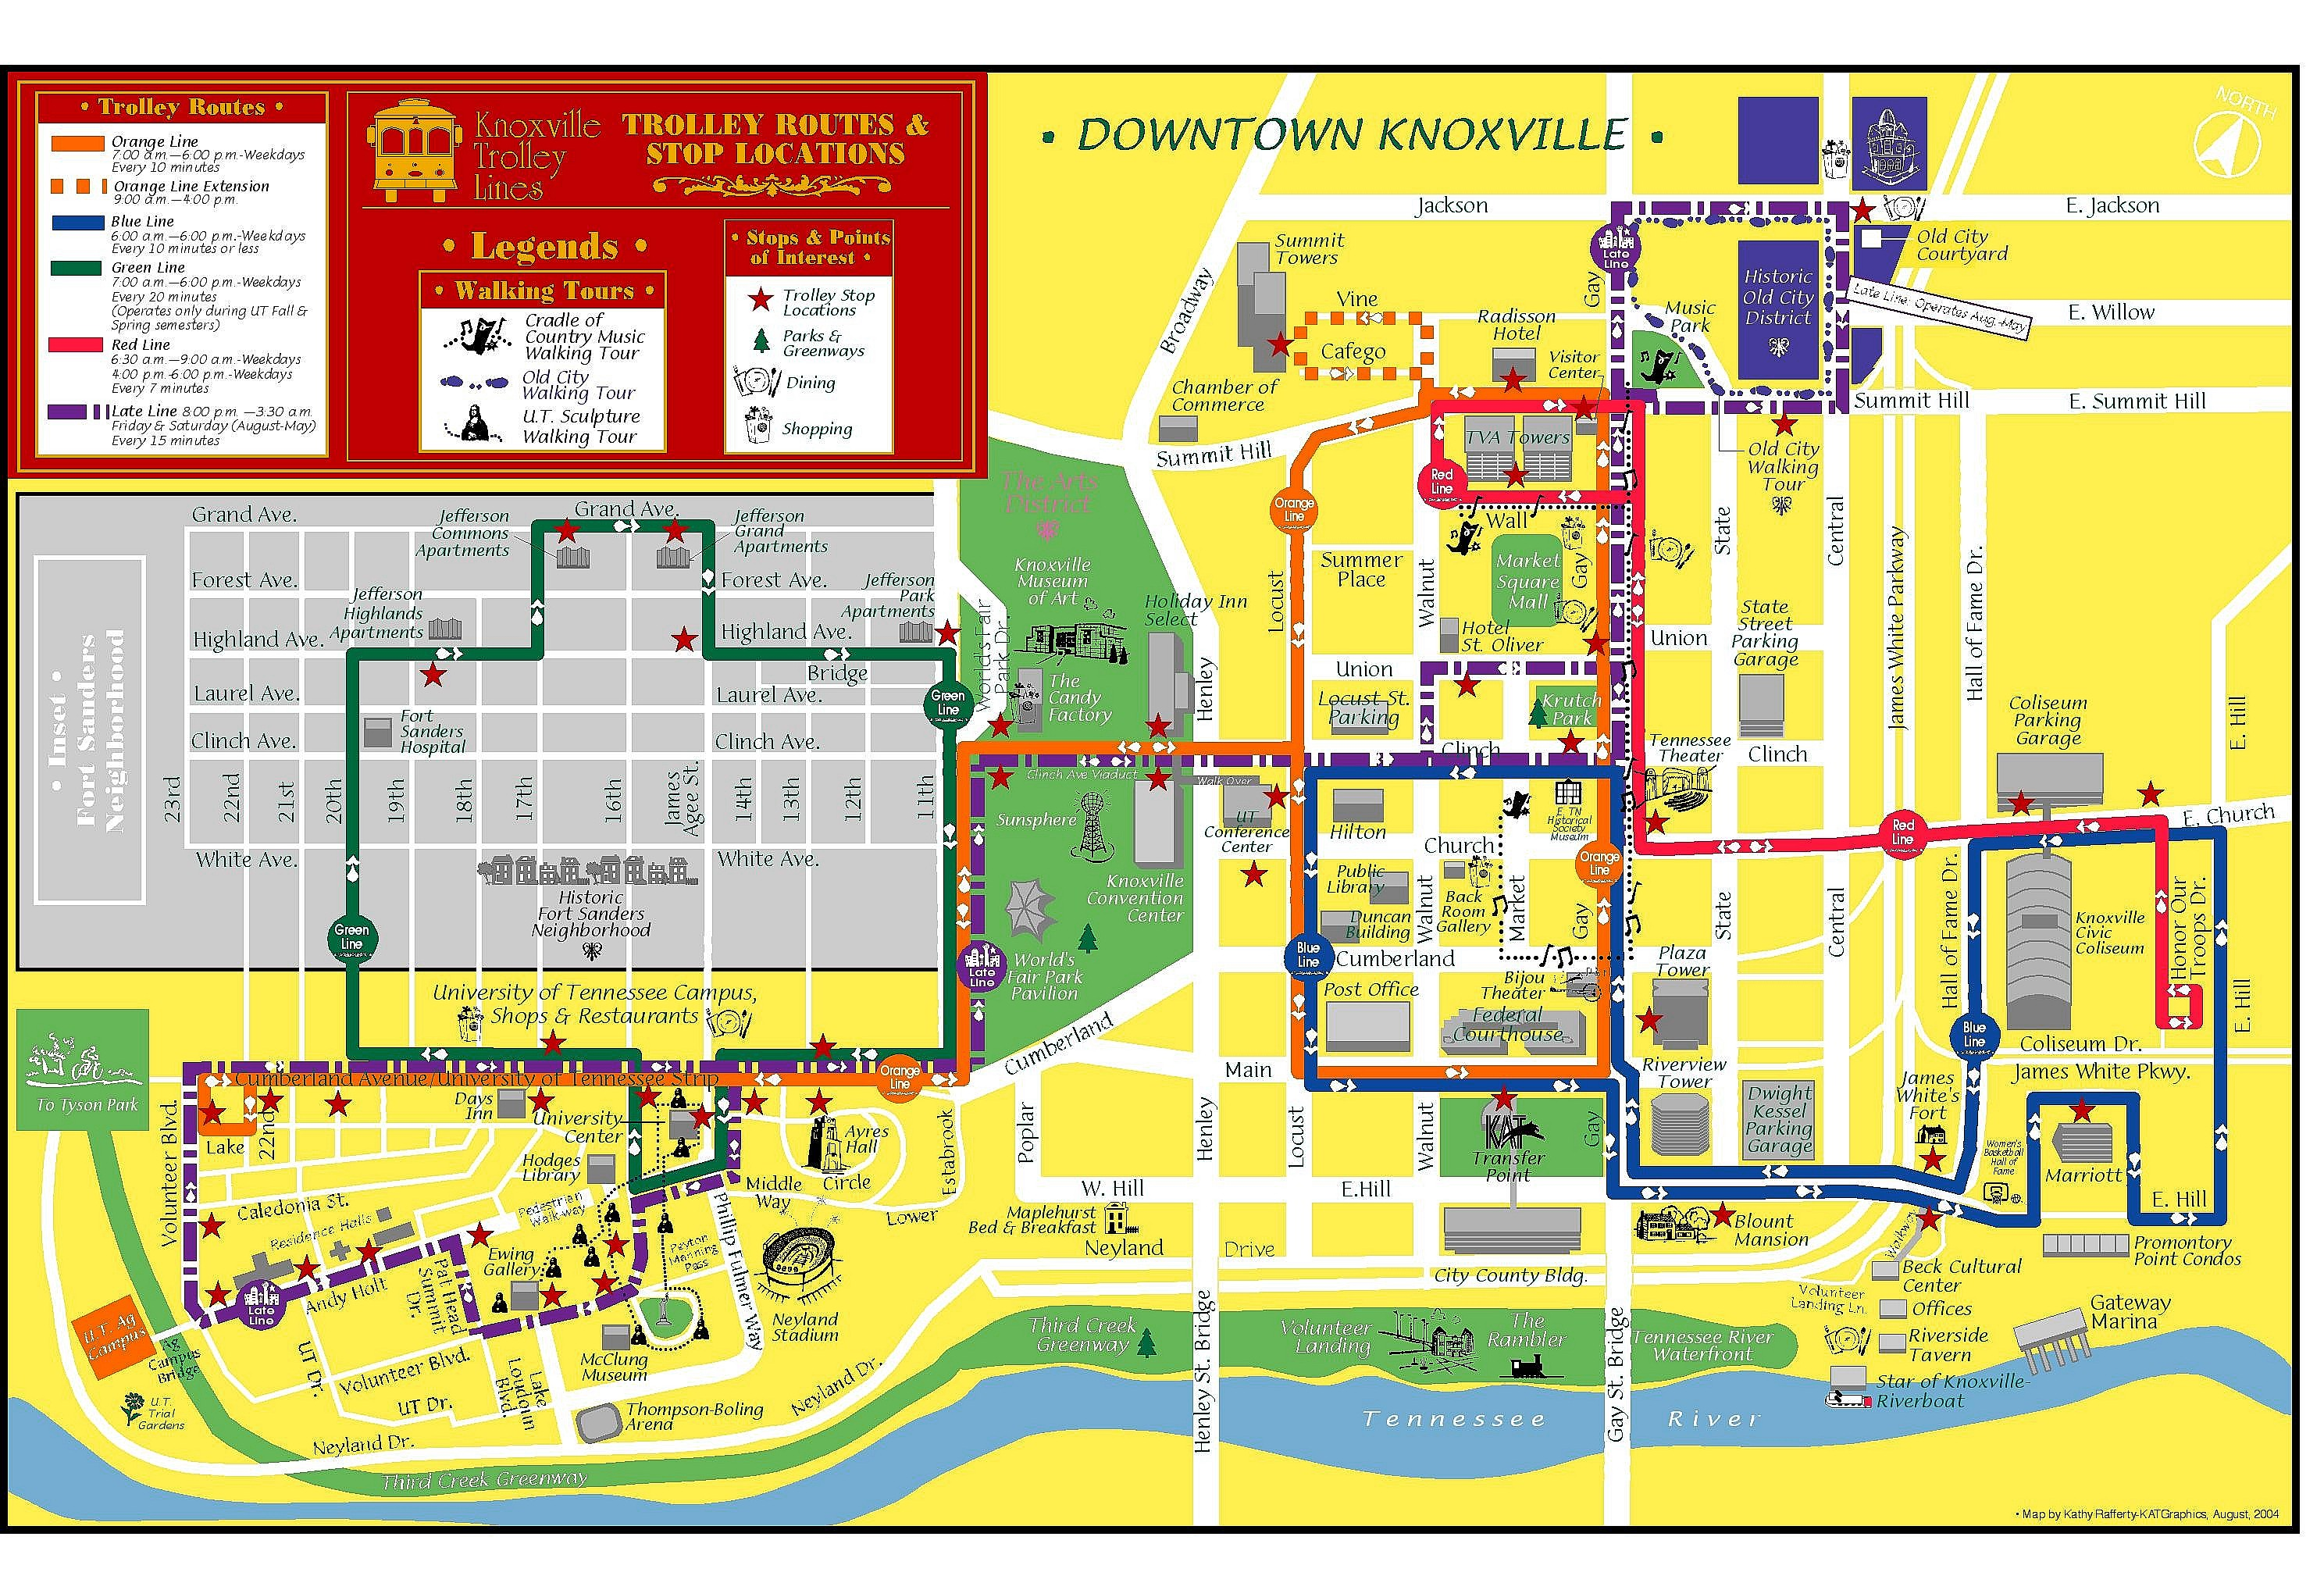 Nashville Tennessee Tourist Attractions – Nashville Tourist Attractions Map